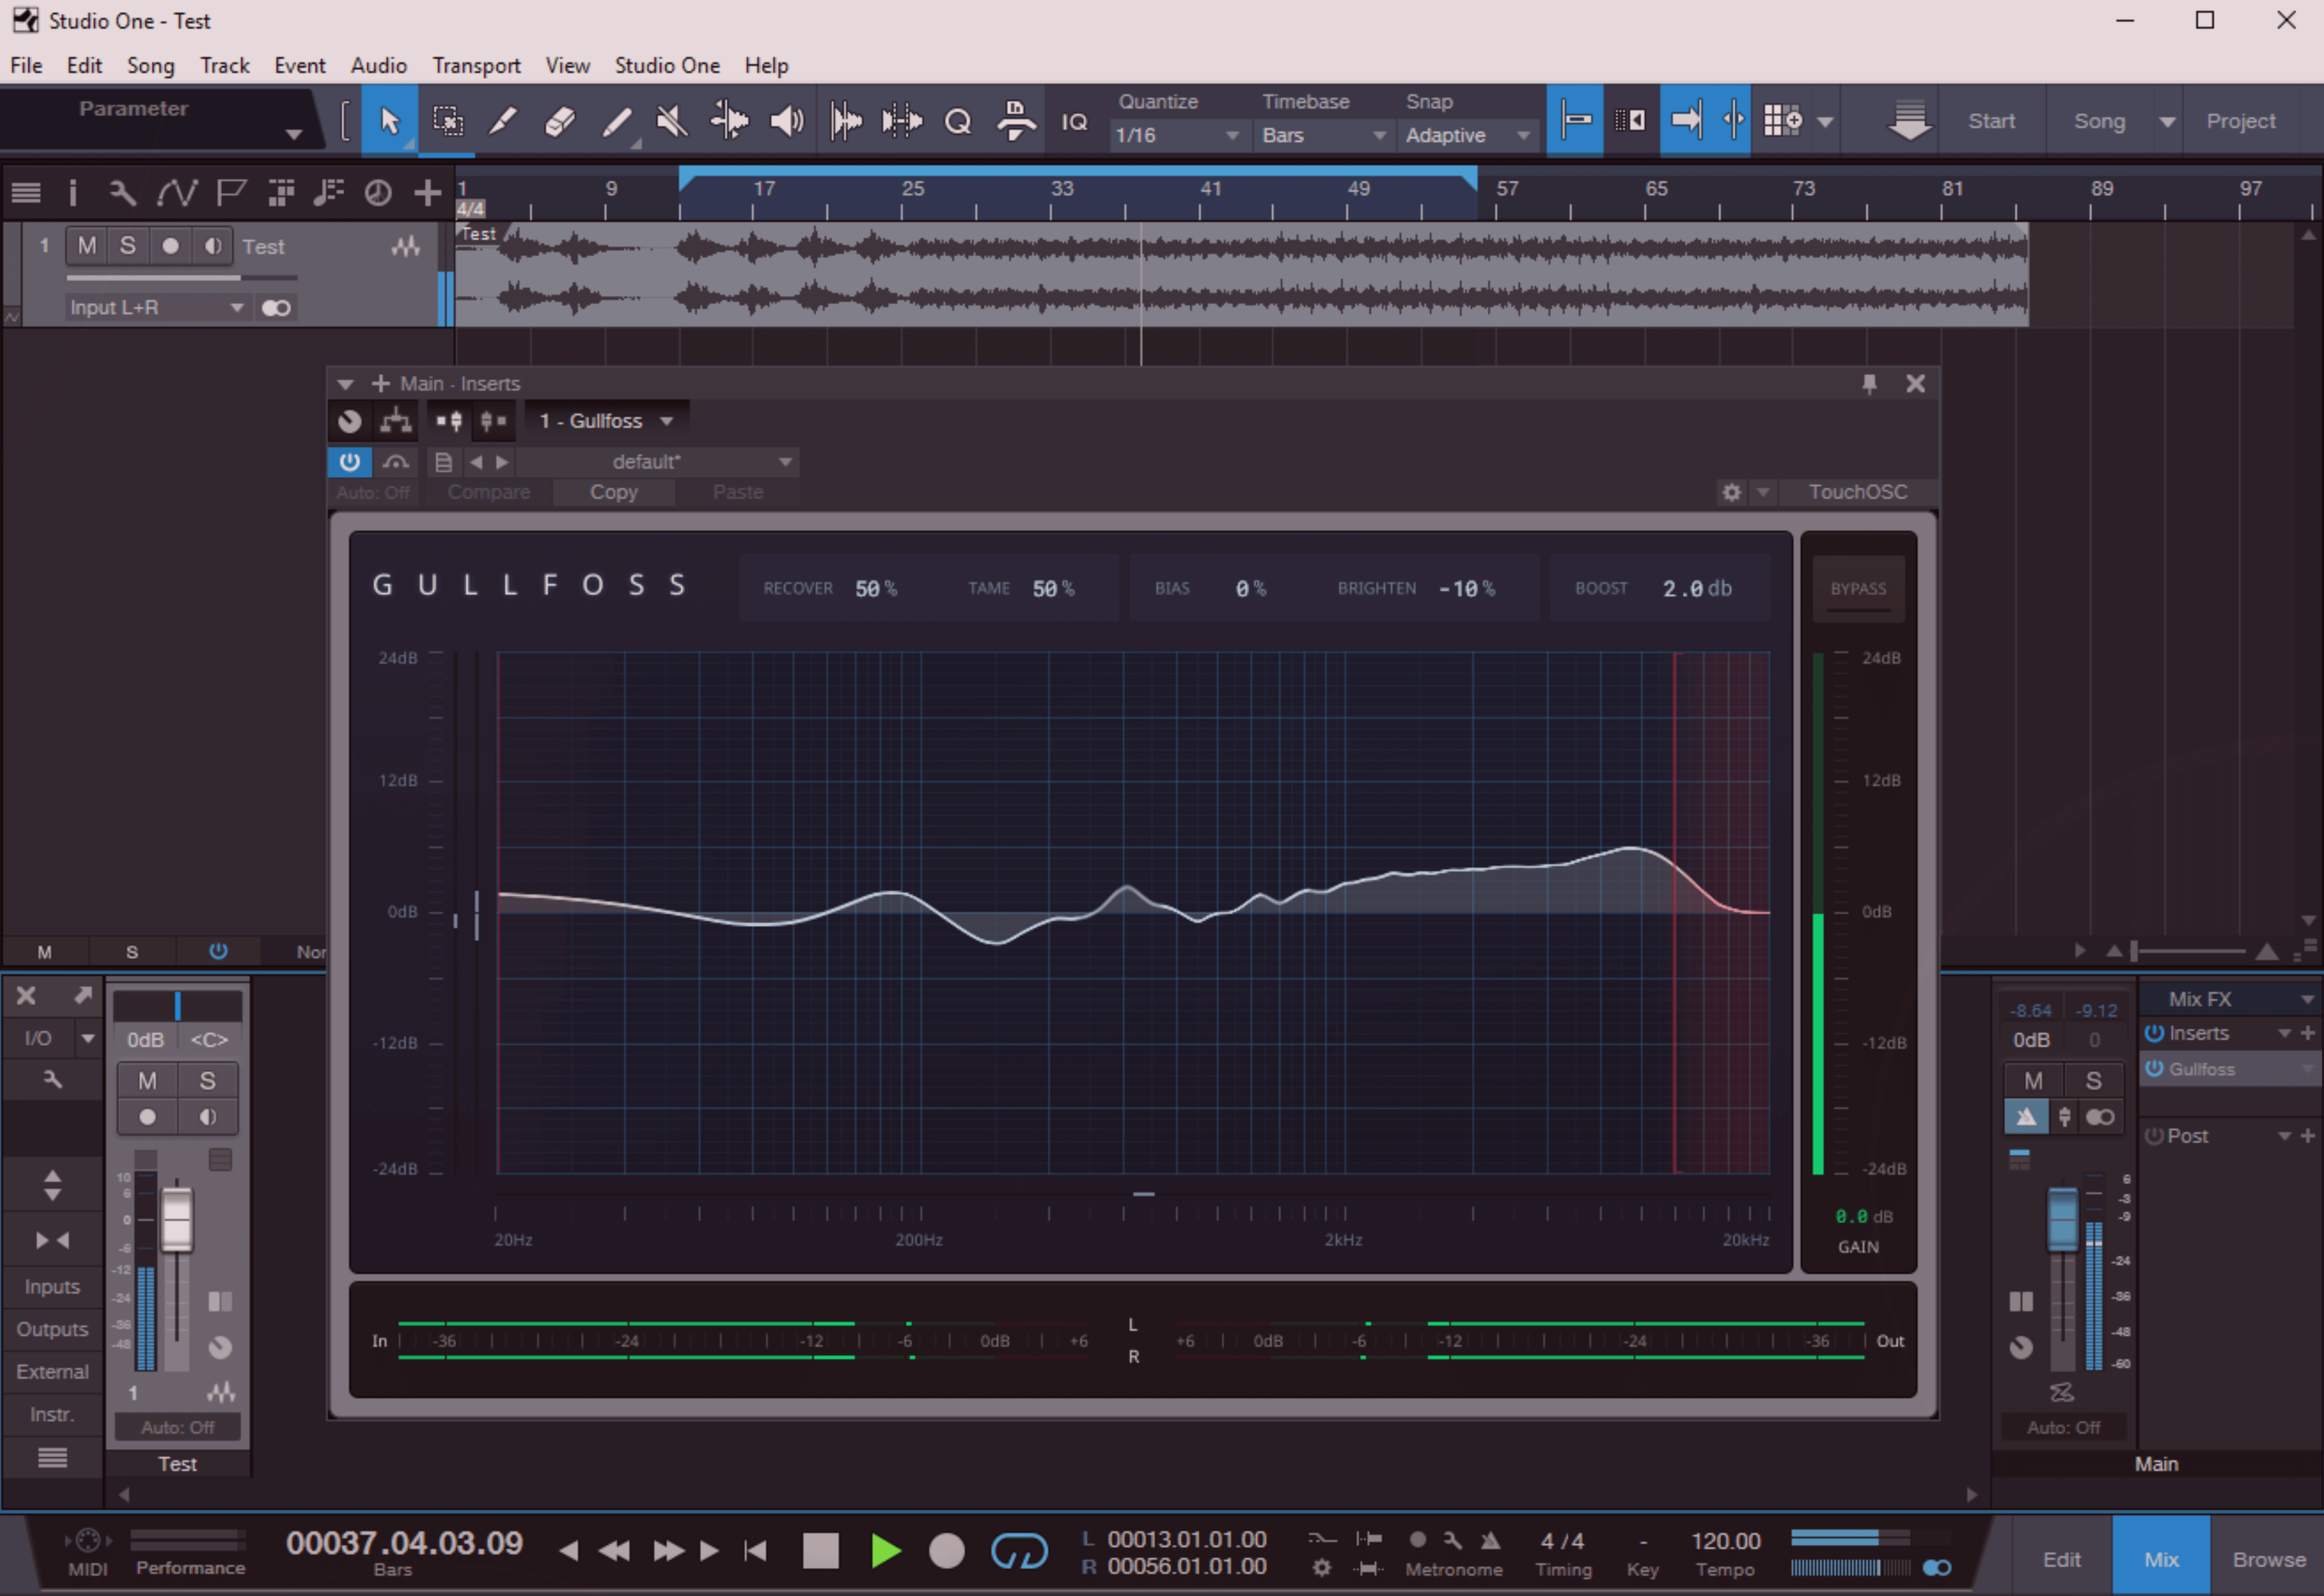 Soundtheory launches Gullfoss intelligent EQ for Windows at